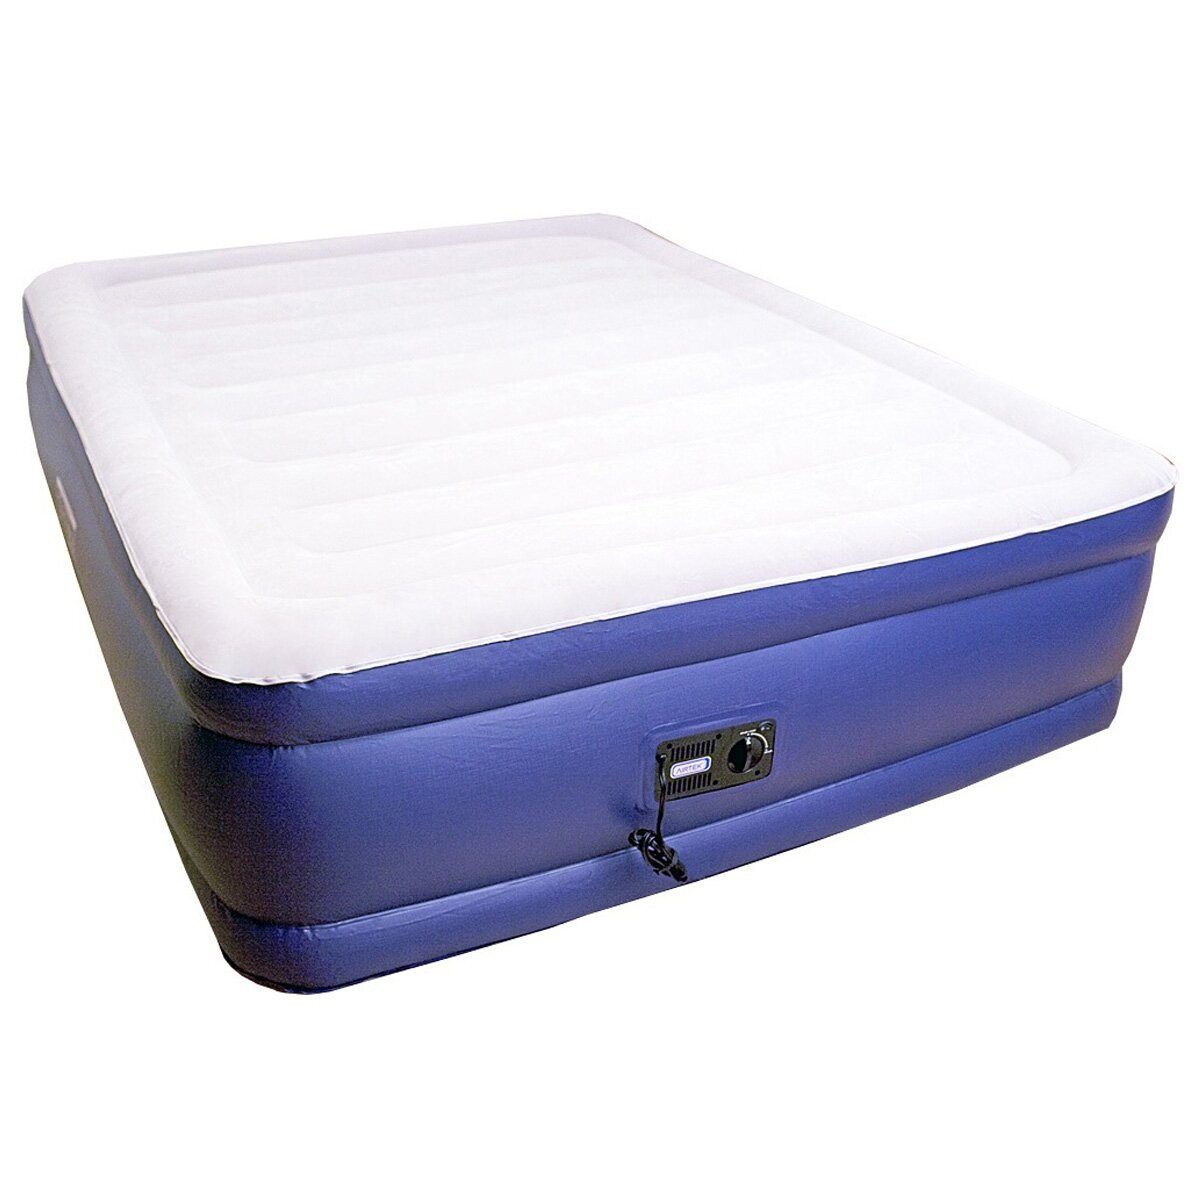 airtek keystone deluxe 20 raised air mattress with built. Black Bedroom Furniture Sets. Home Design Ideas